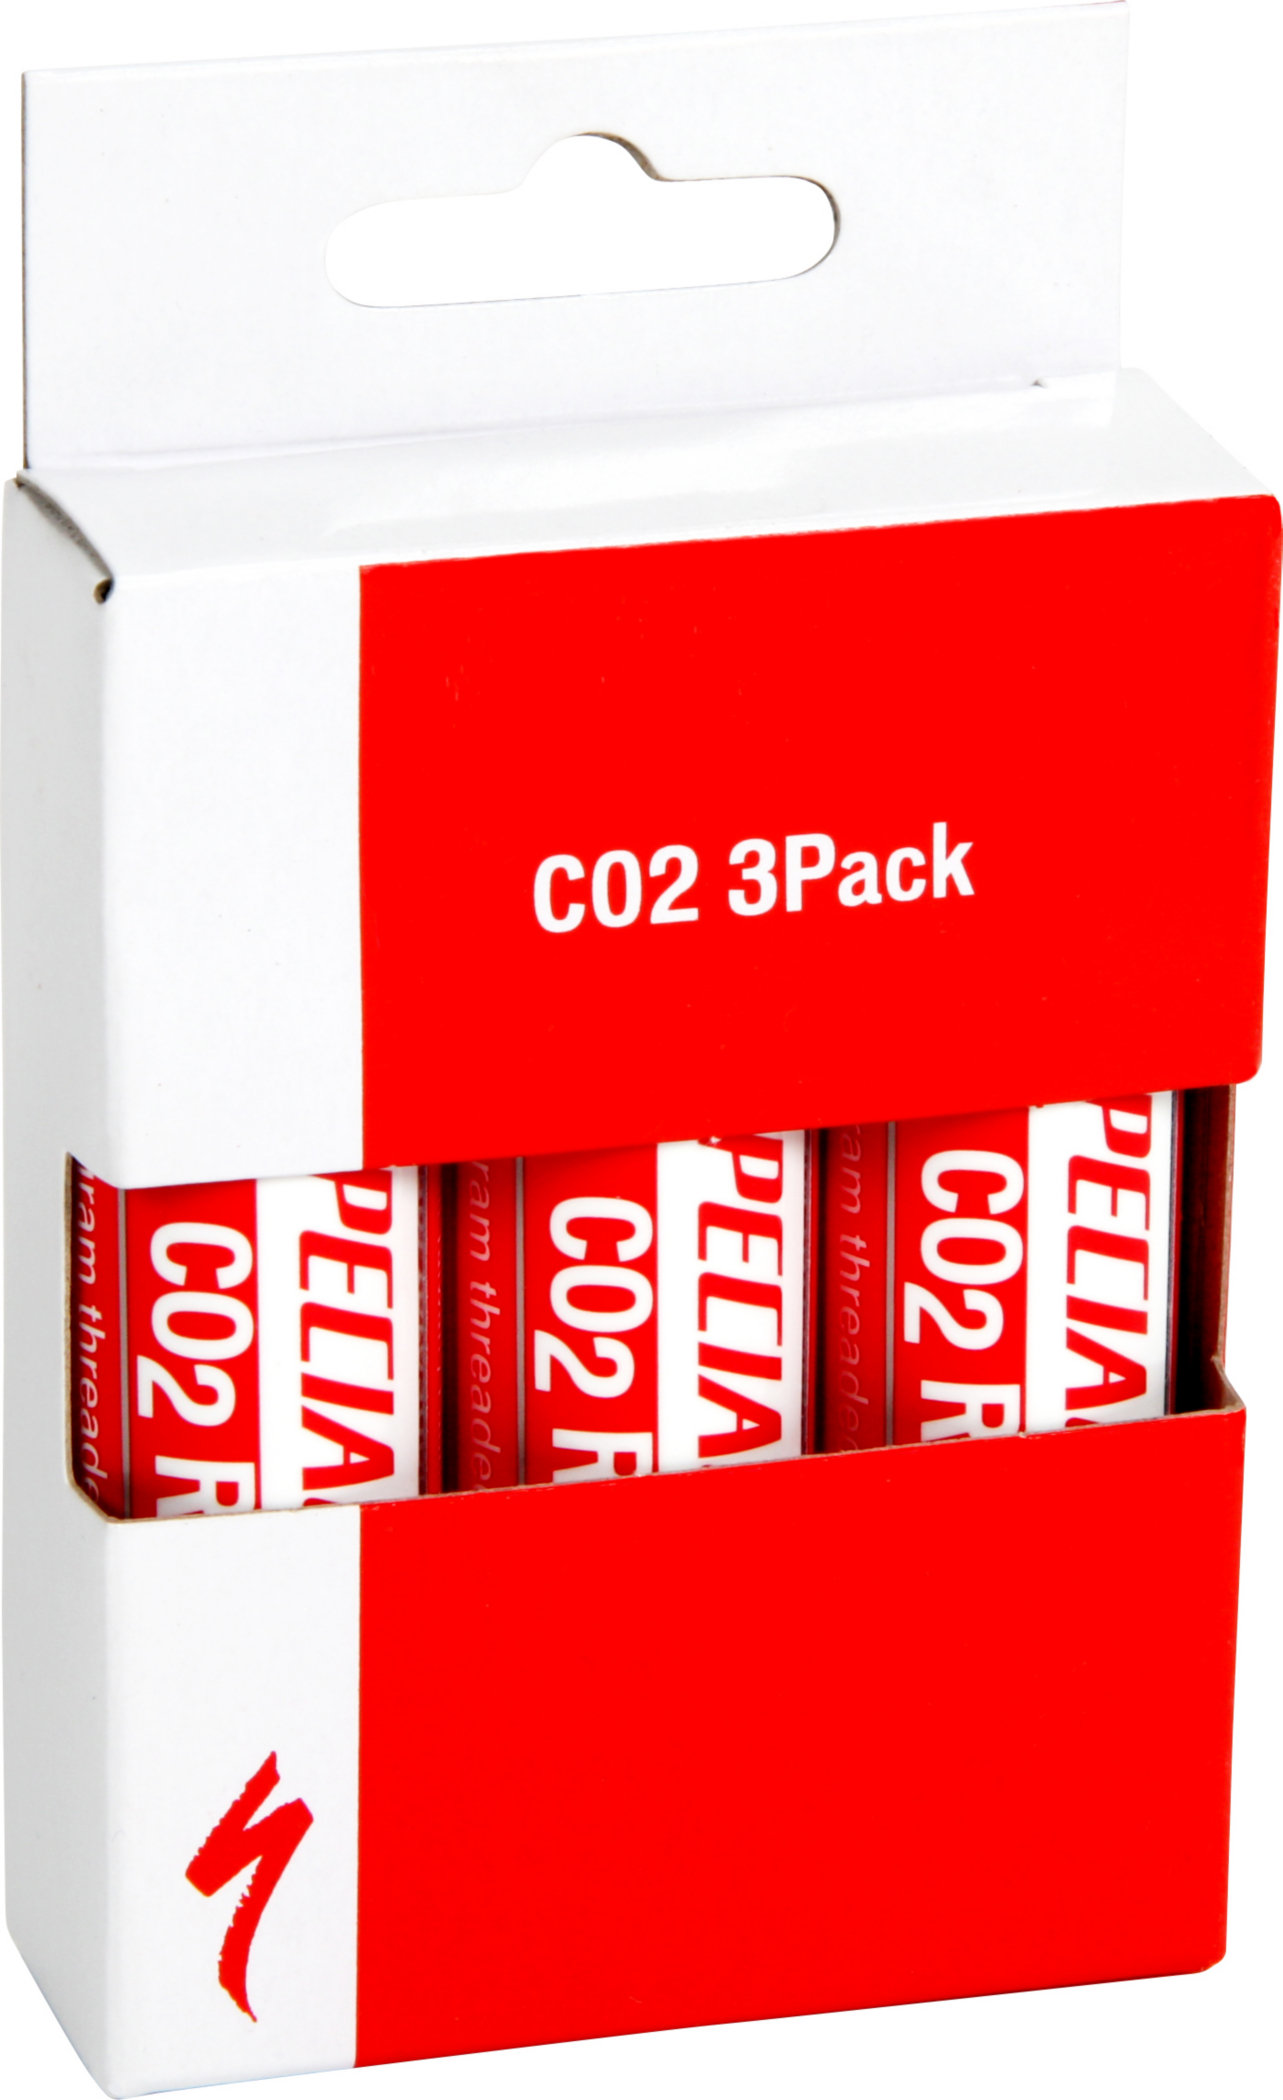 SPECIALIZED CO2 CANISTER 25G 3PACK - Alpha Bikes